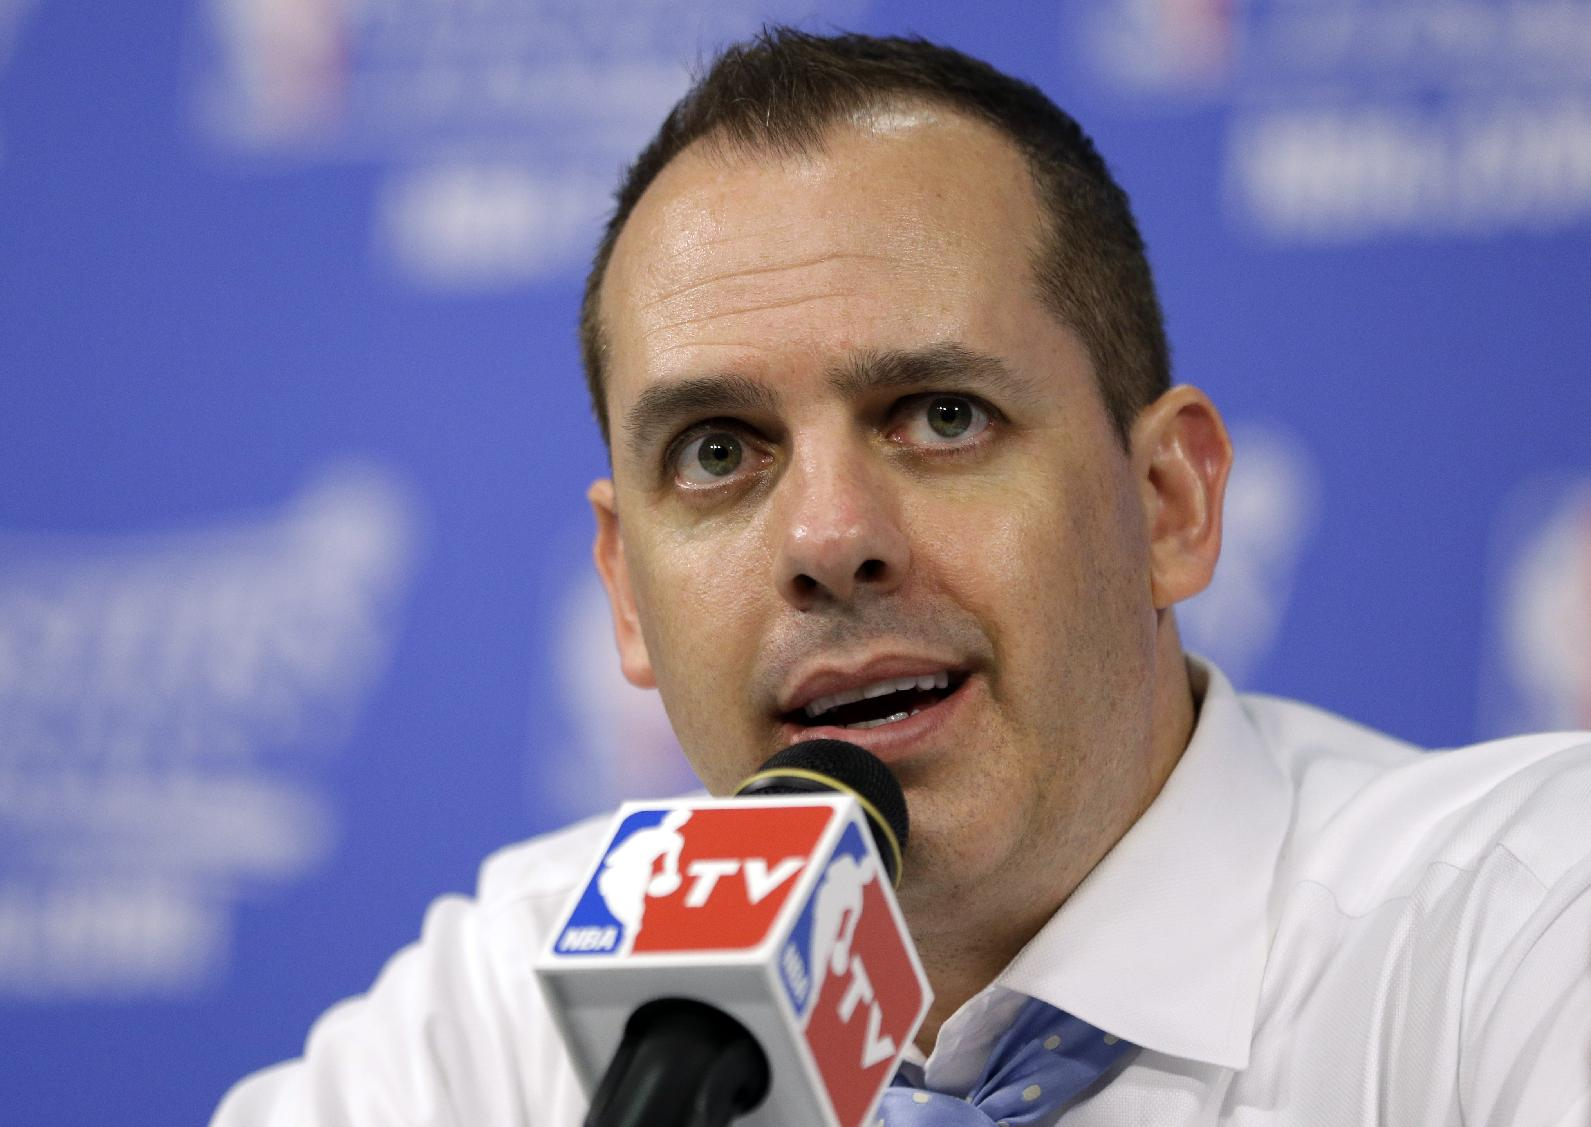 Indiana Pacers coach Frank Vogel speaks during a news conference following Game 3 against the Miami Heat in the NBA basketball Eastern Conference finals playoff series, Saturday, May 24, 2014, in Miami. The Heat defeated the Pacers 99-87